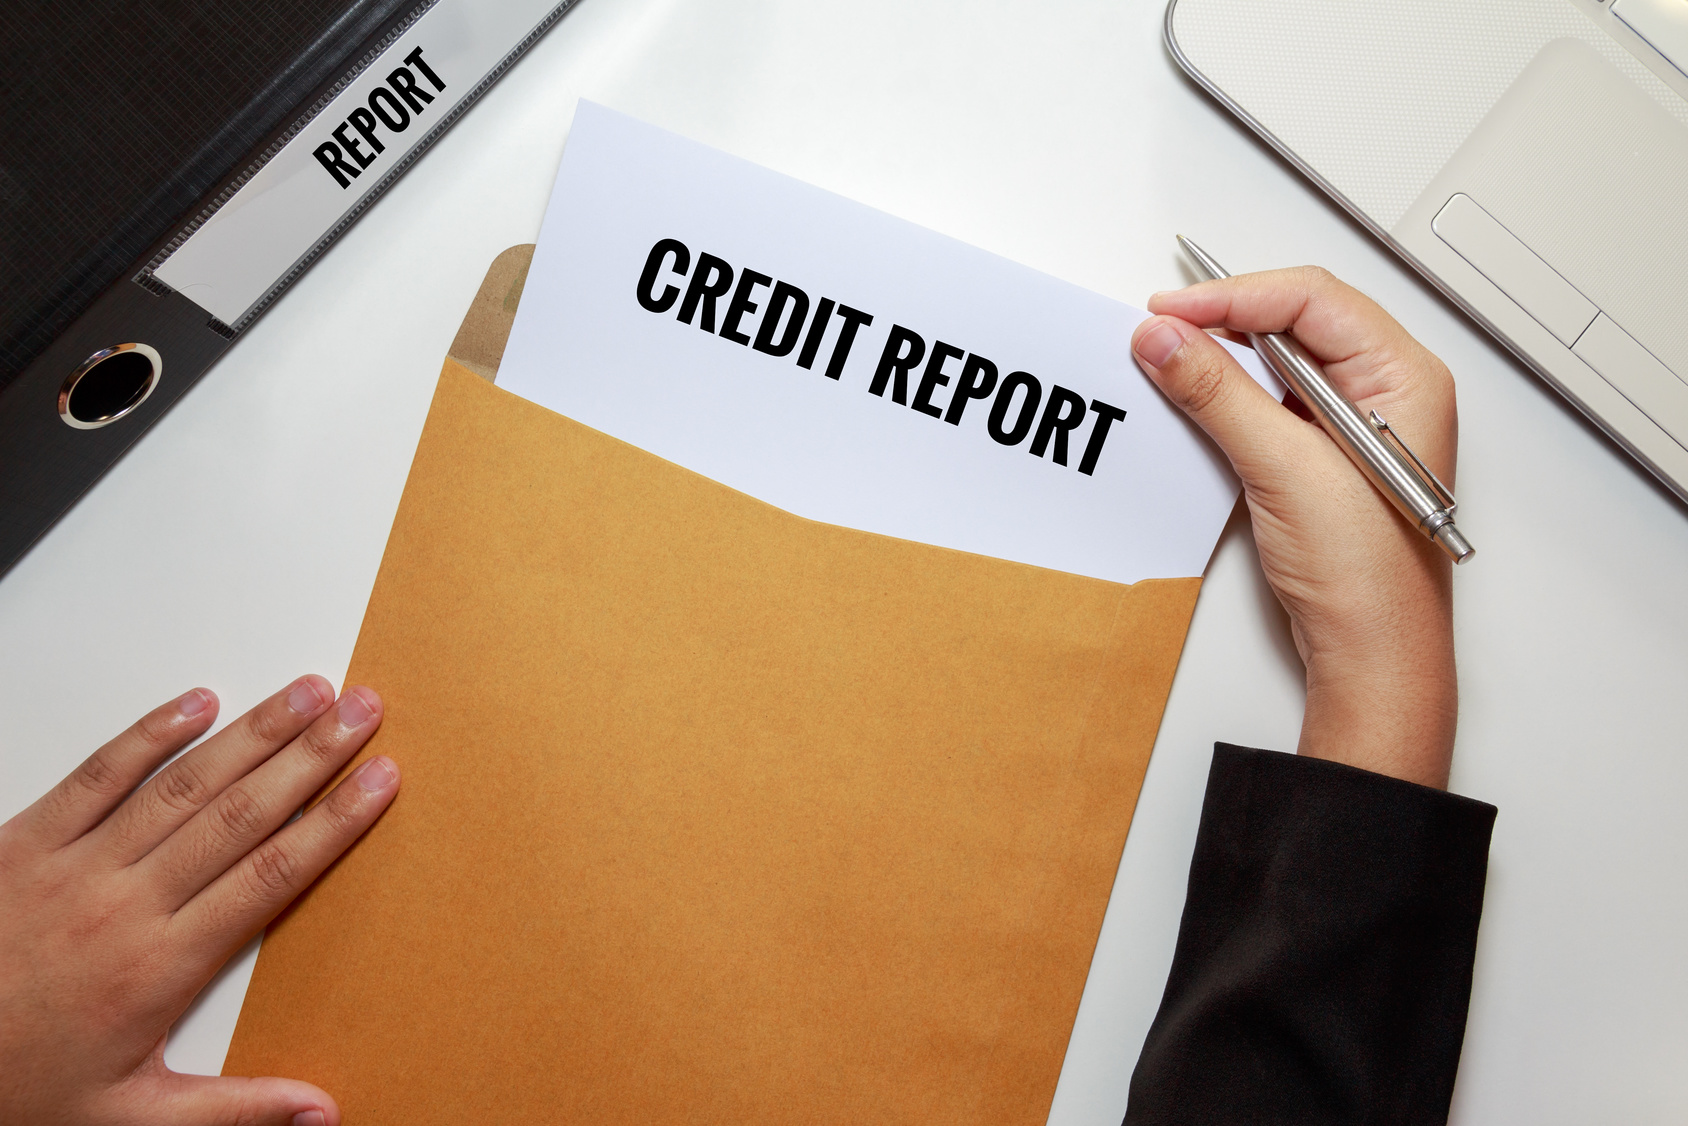 my credit report